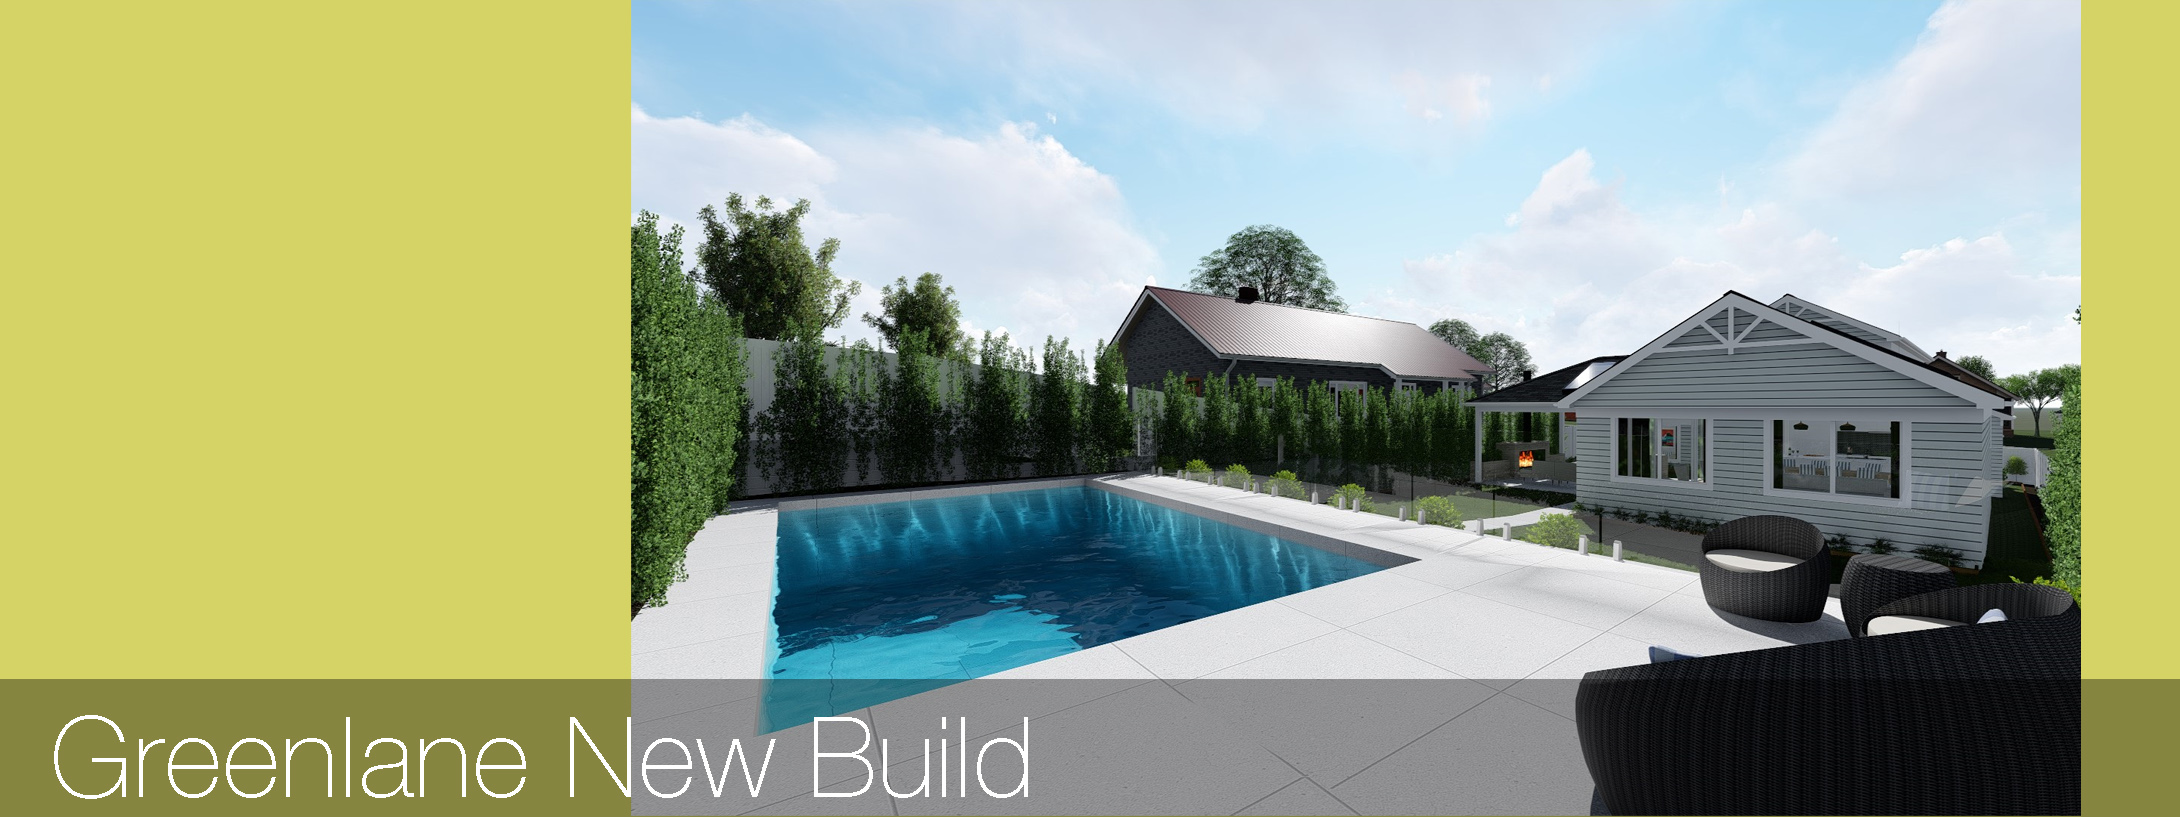 Steve And Hollie Have Been Through The Process Of Building And Renovating  Before, And Are Finally Looking At Building Their Dream Home. They Wanted A  Design ...